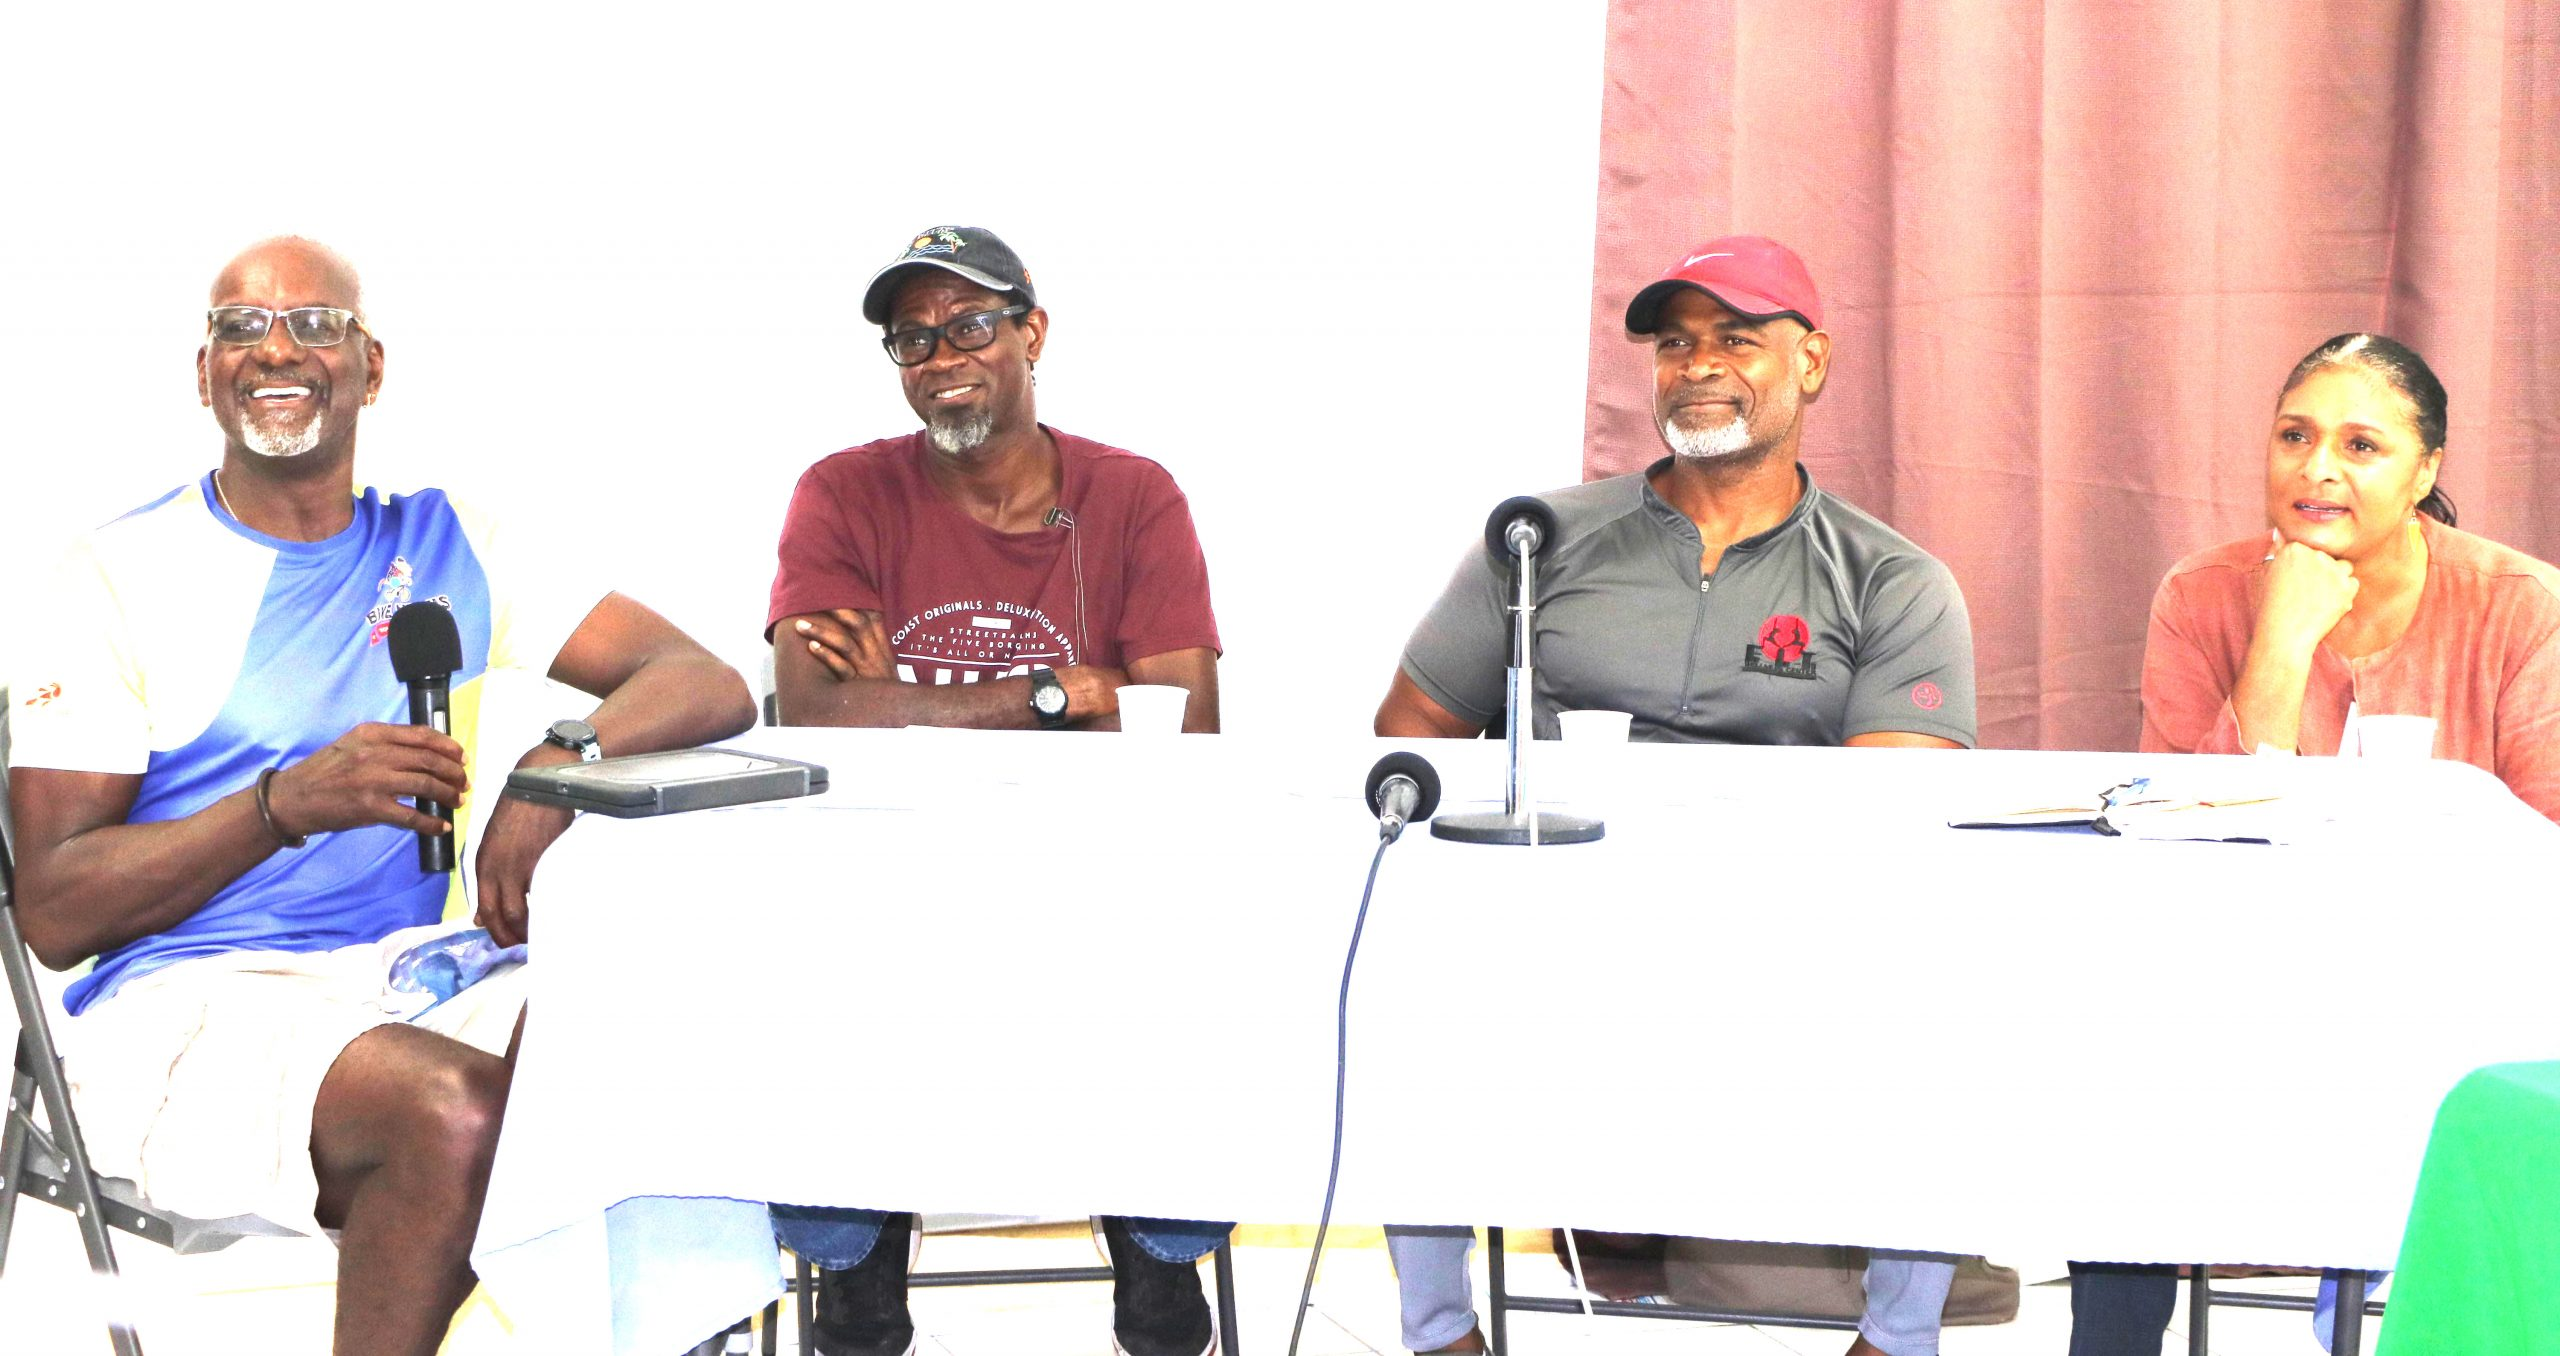 You are currently viewing Nevis Chapter of SKN Moves first ever Bike Relay deemed a success